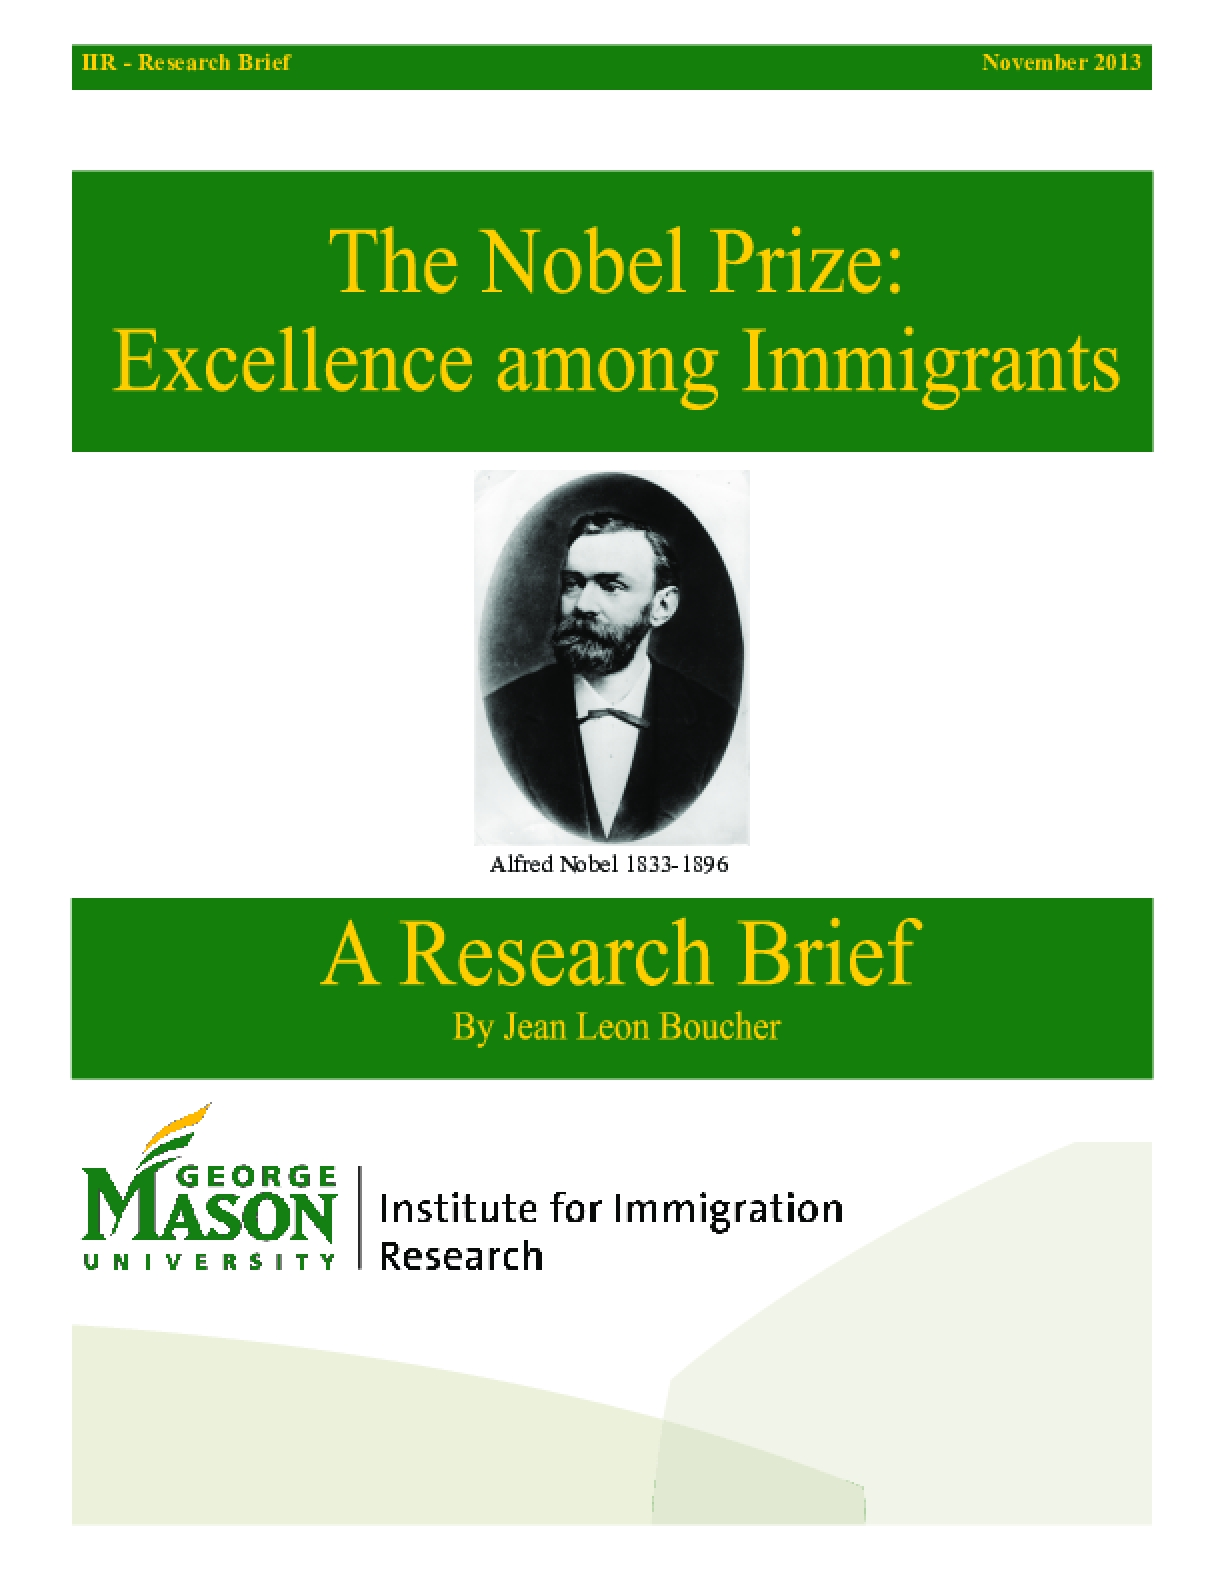 The Nobel Prize: Excellence among Immigrants